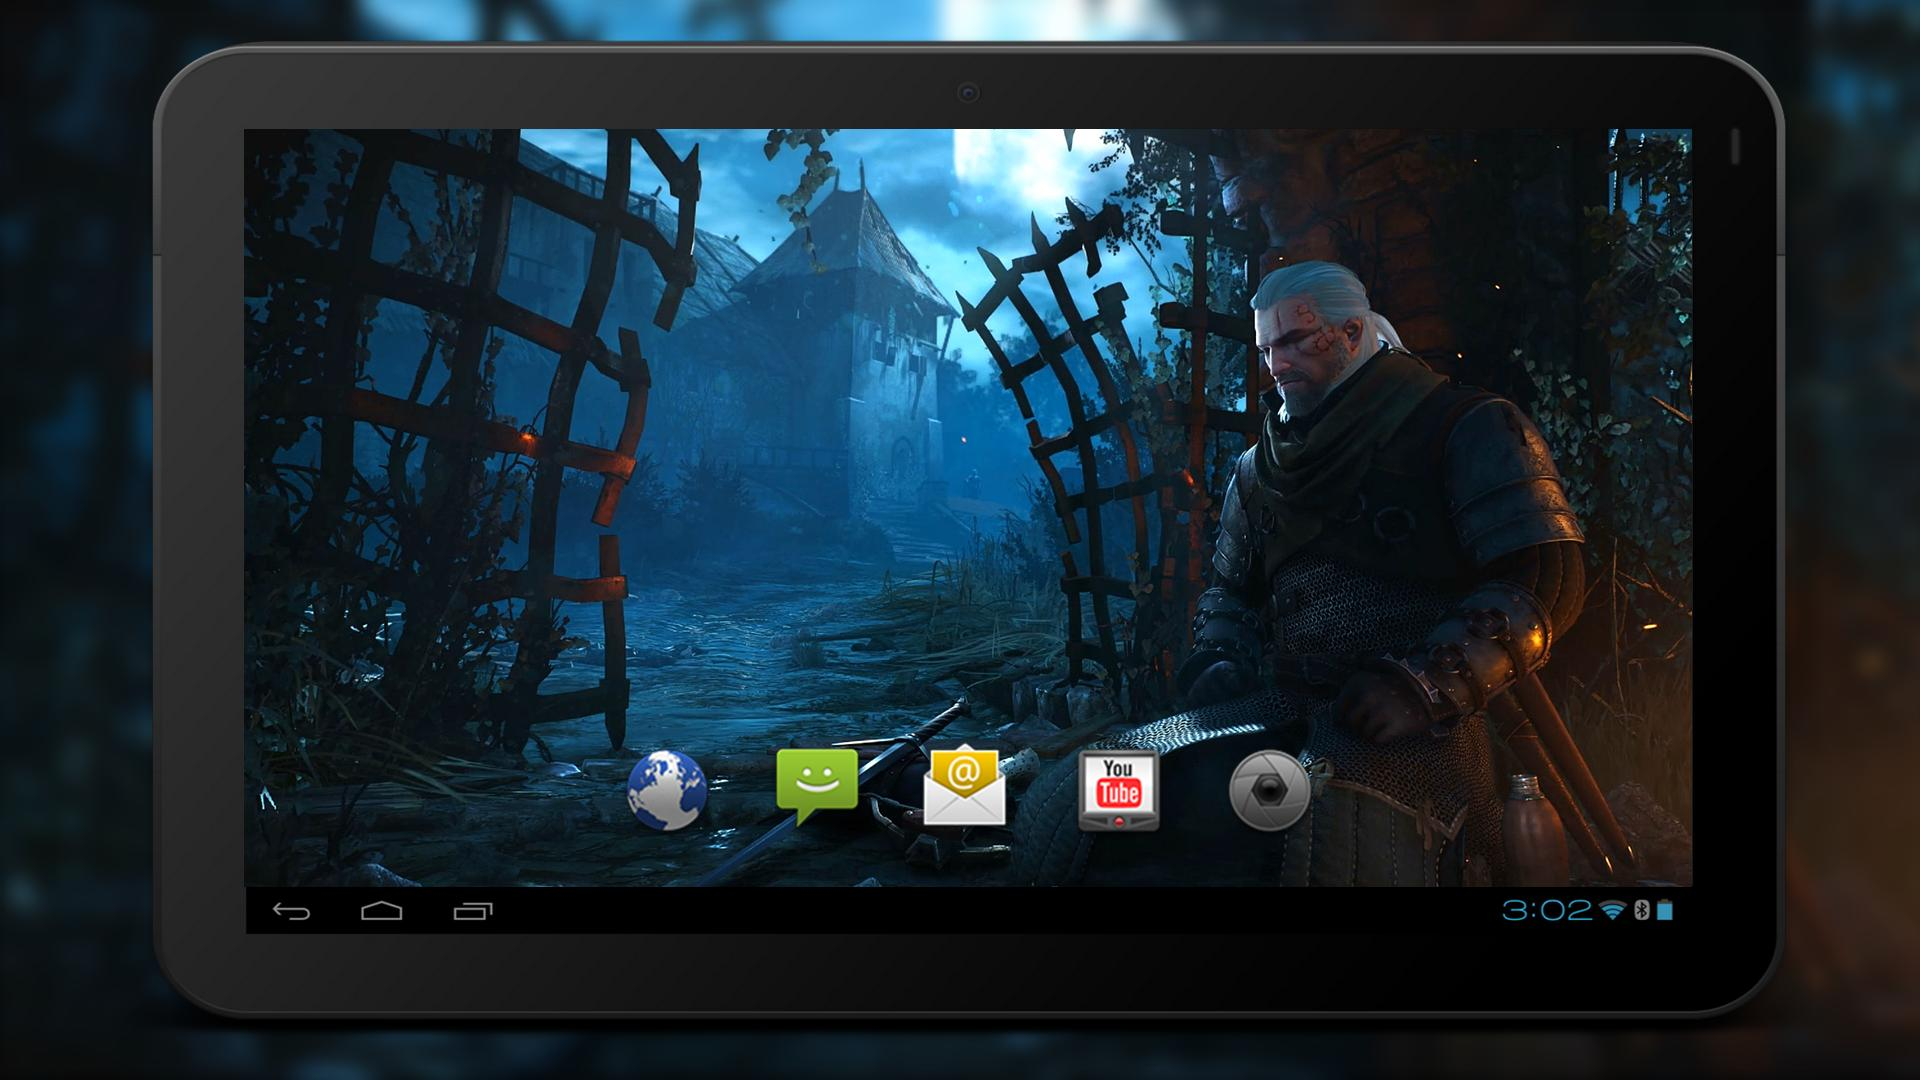 4k Witcher 3 Hearts Of Stone Live Wallpaper For Android Apk Download